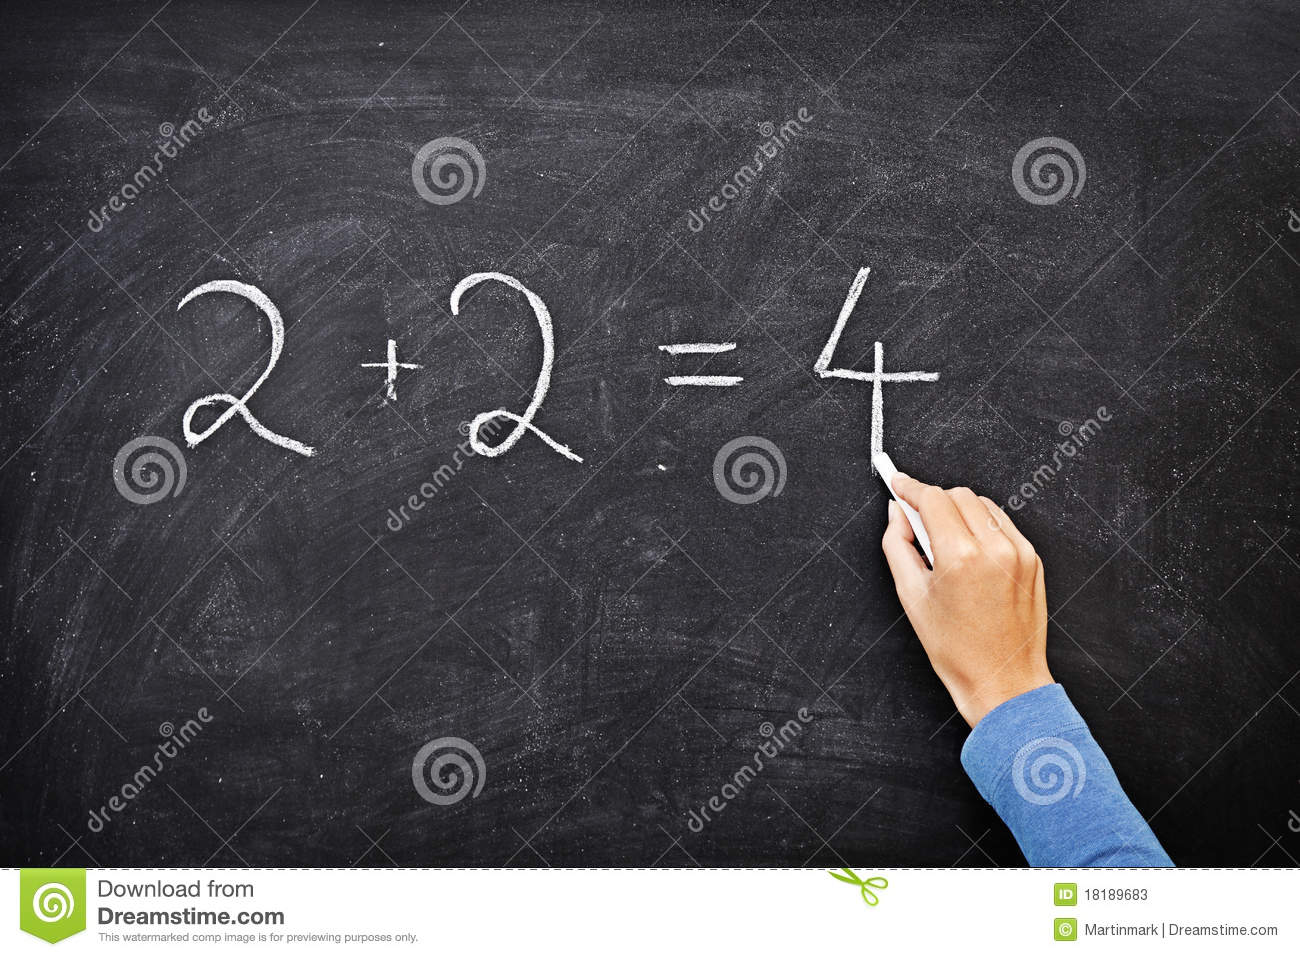 Math blackboard / chalkboard writing